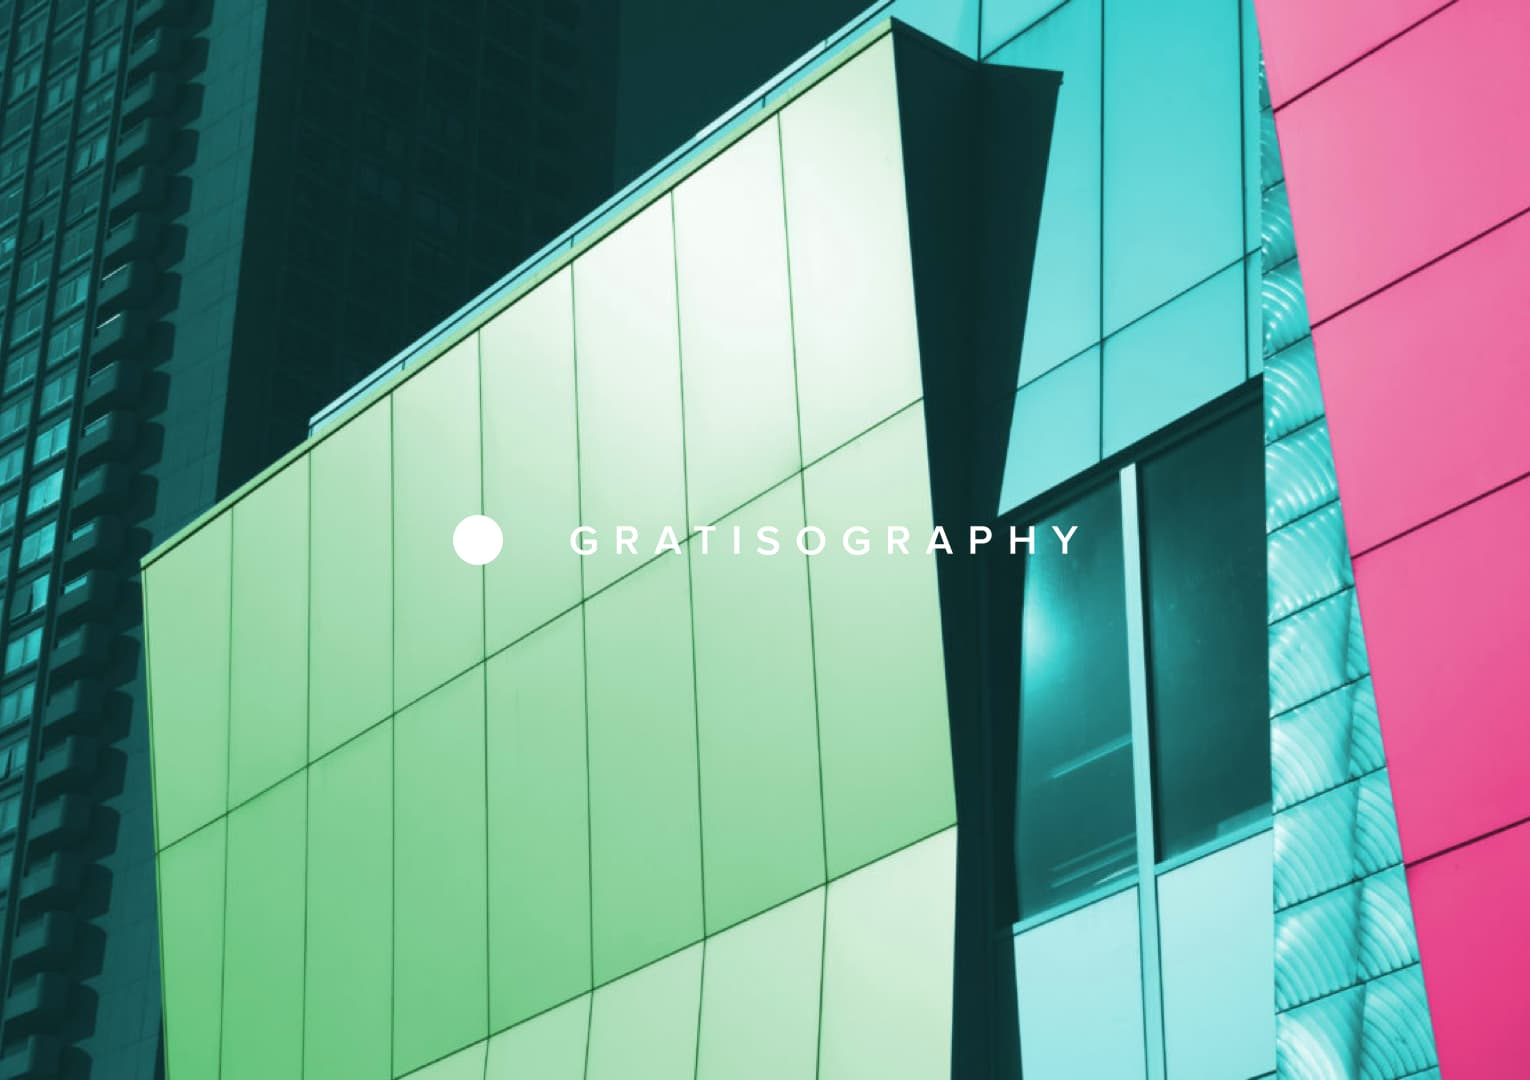 Gratisography by